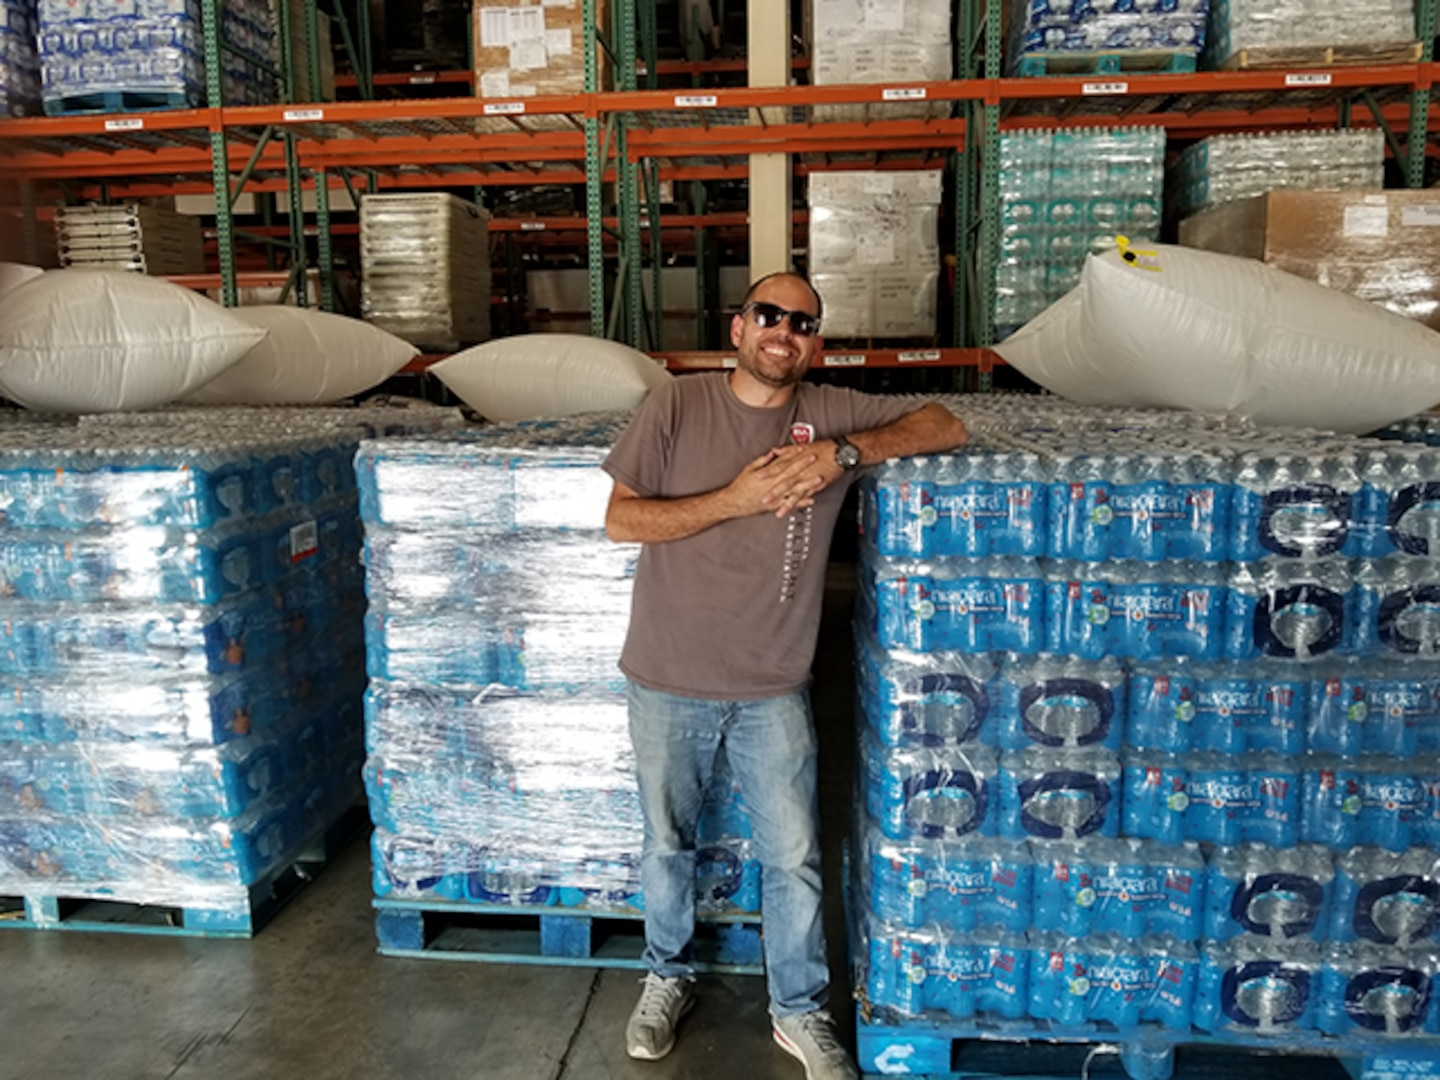 Defense Contract Management Agency Los Angeles employee Efrain Vega De Varona, who is a quality engineer, has distributed food and water in Puerto Rico to help with the hurricane relief efforts since Hurricane Maria caused major damage to the island. (Courtesy photo by Efrain Vega De Varona)